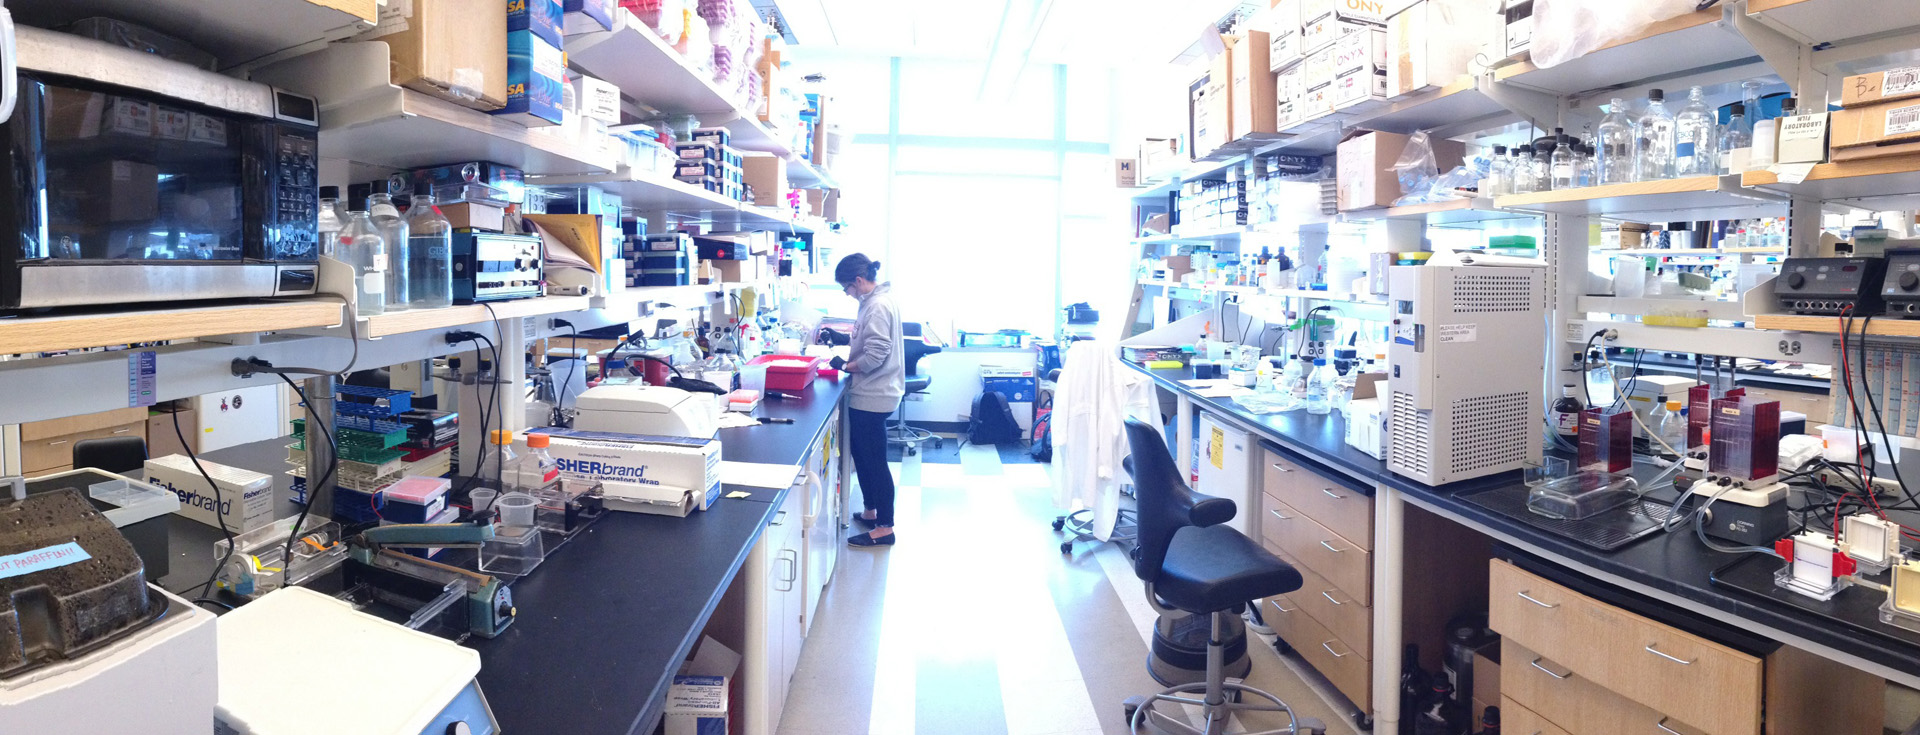 Inside the Chang Lab